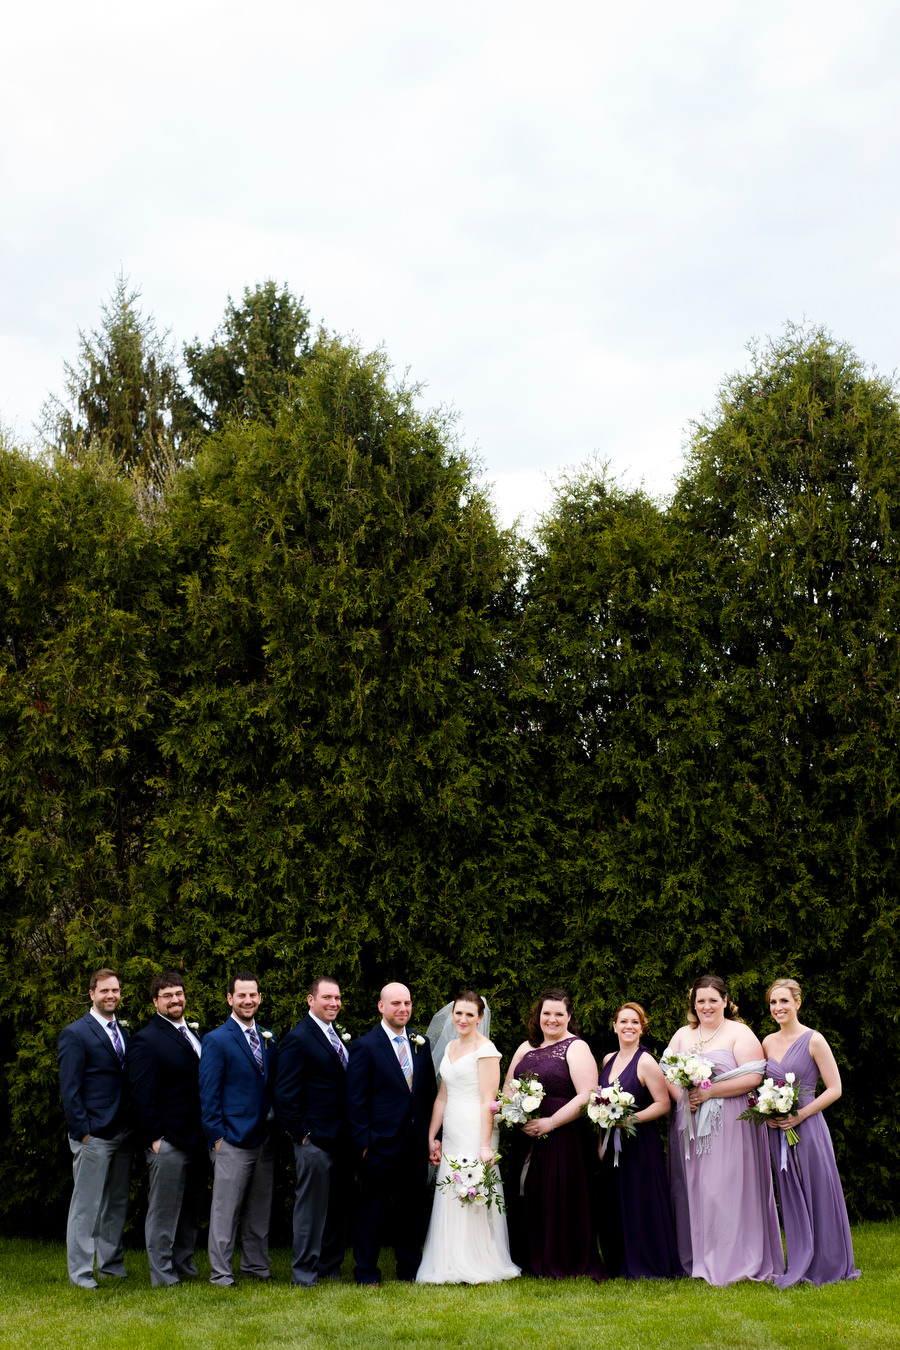 Lisa_Wedding_Warren_ConferenceCenter-057.JPG